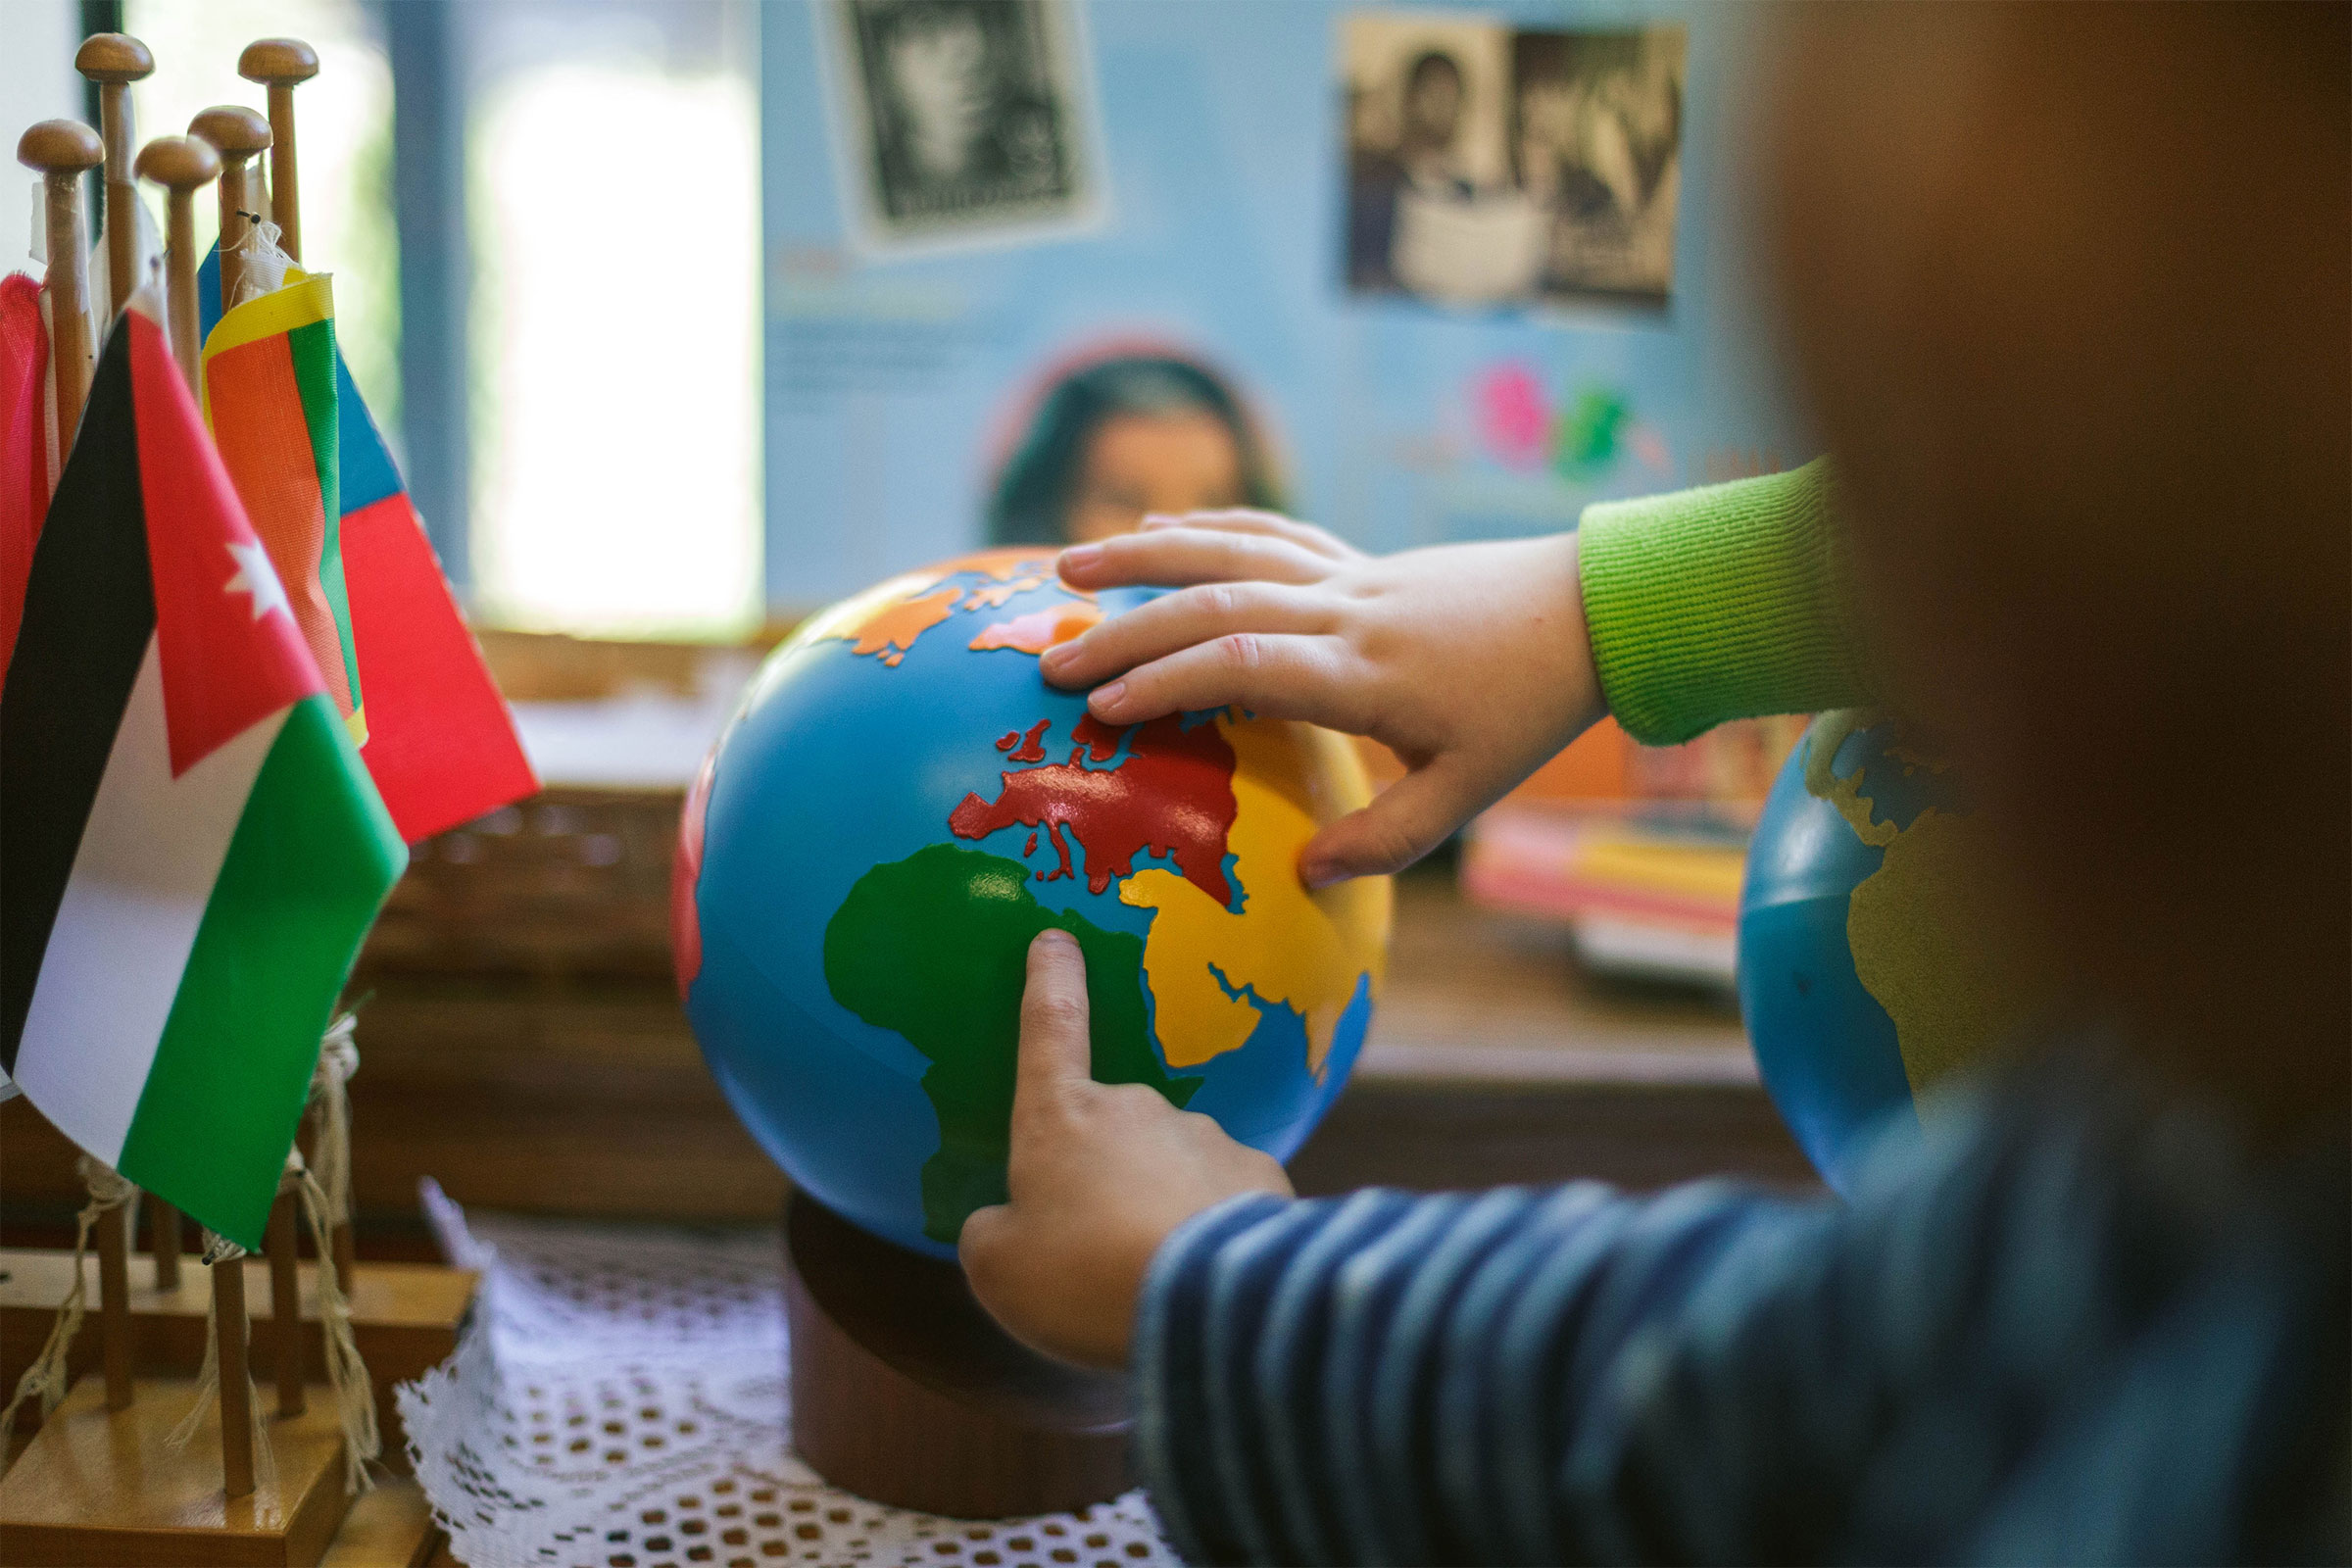 Children's hands pointing to globe of the world next to flags in Montessori classroom